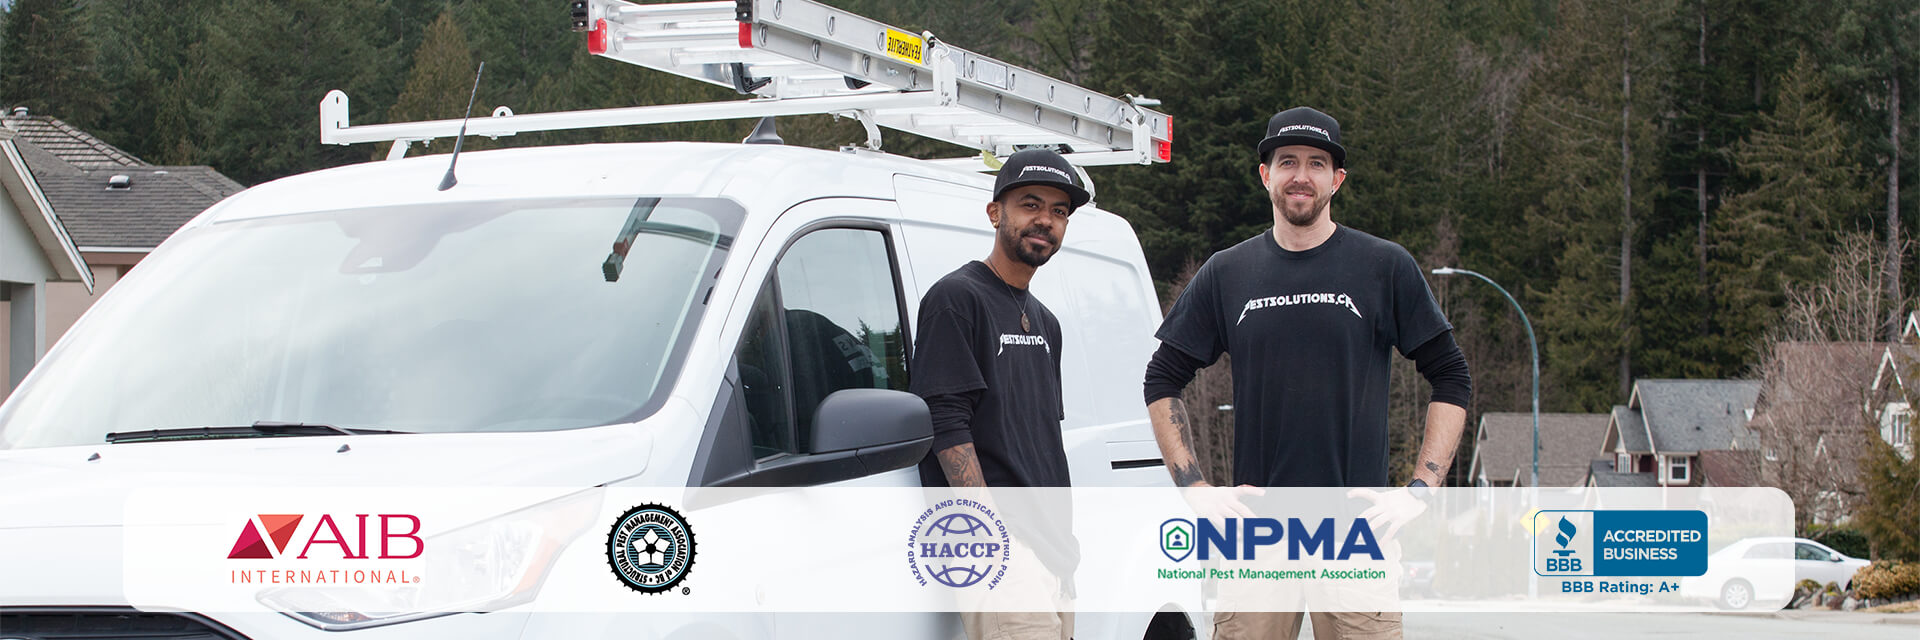 Pest control specialists in front of their service truck in a suburb community are supported by our affiliated companies